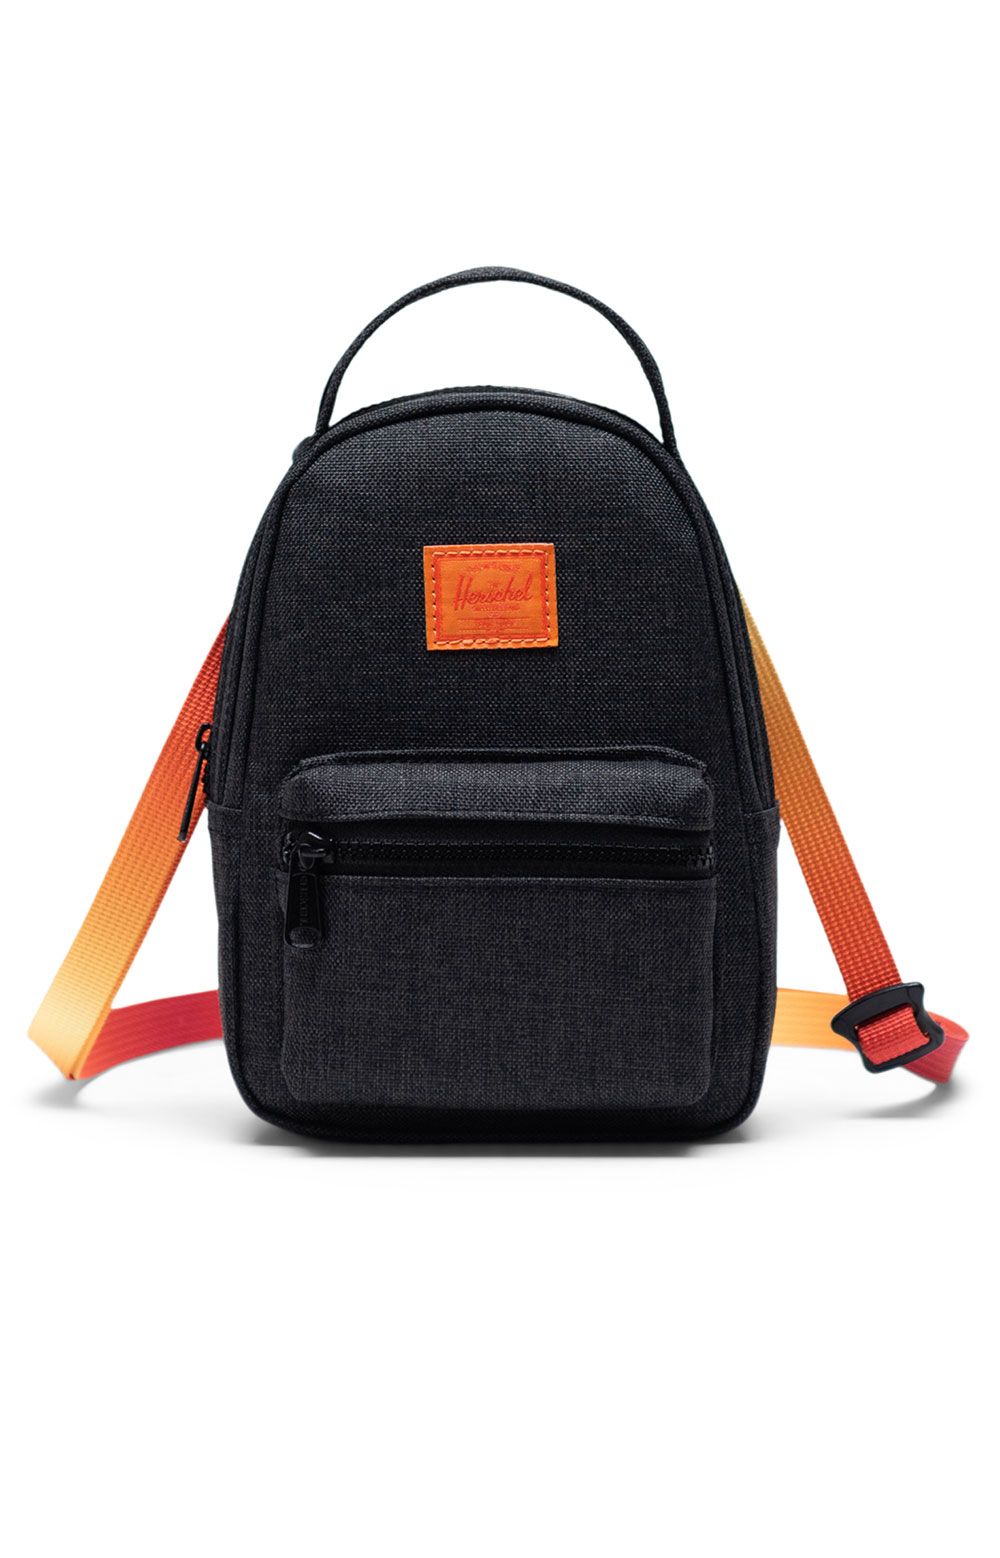 Nova Crossbody Bag - Black Crosshatch Sunset